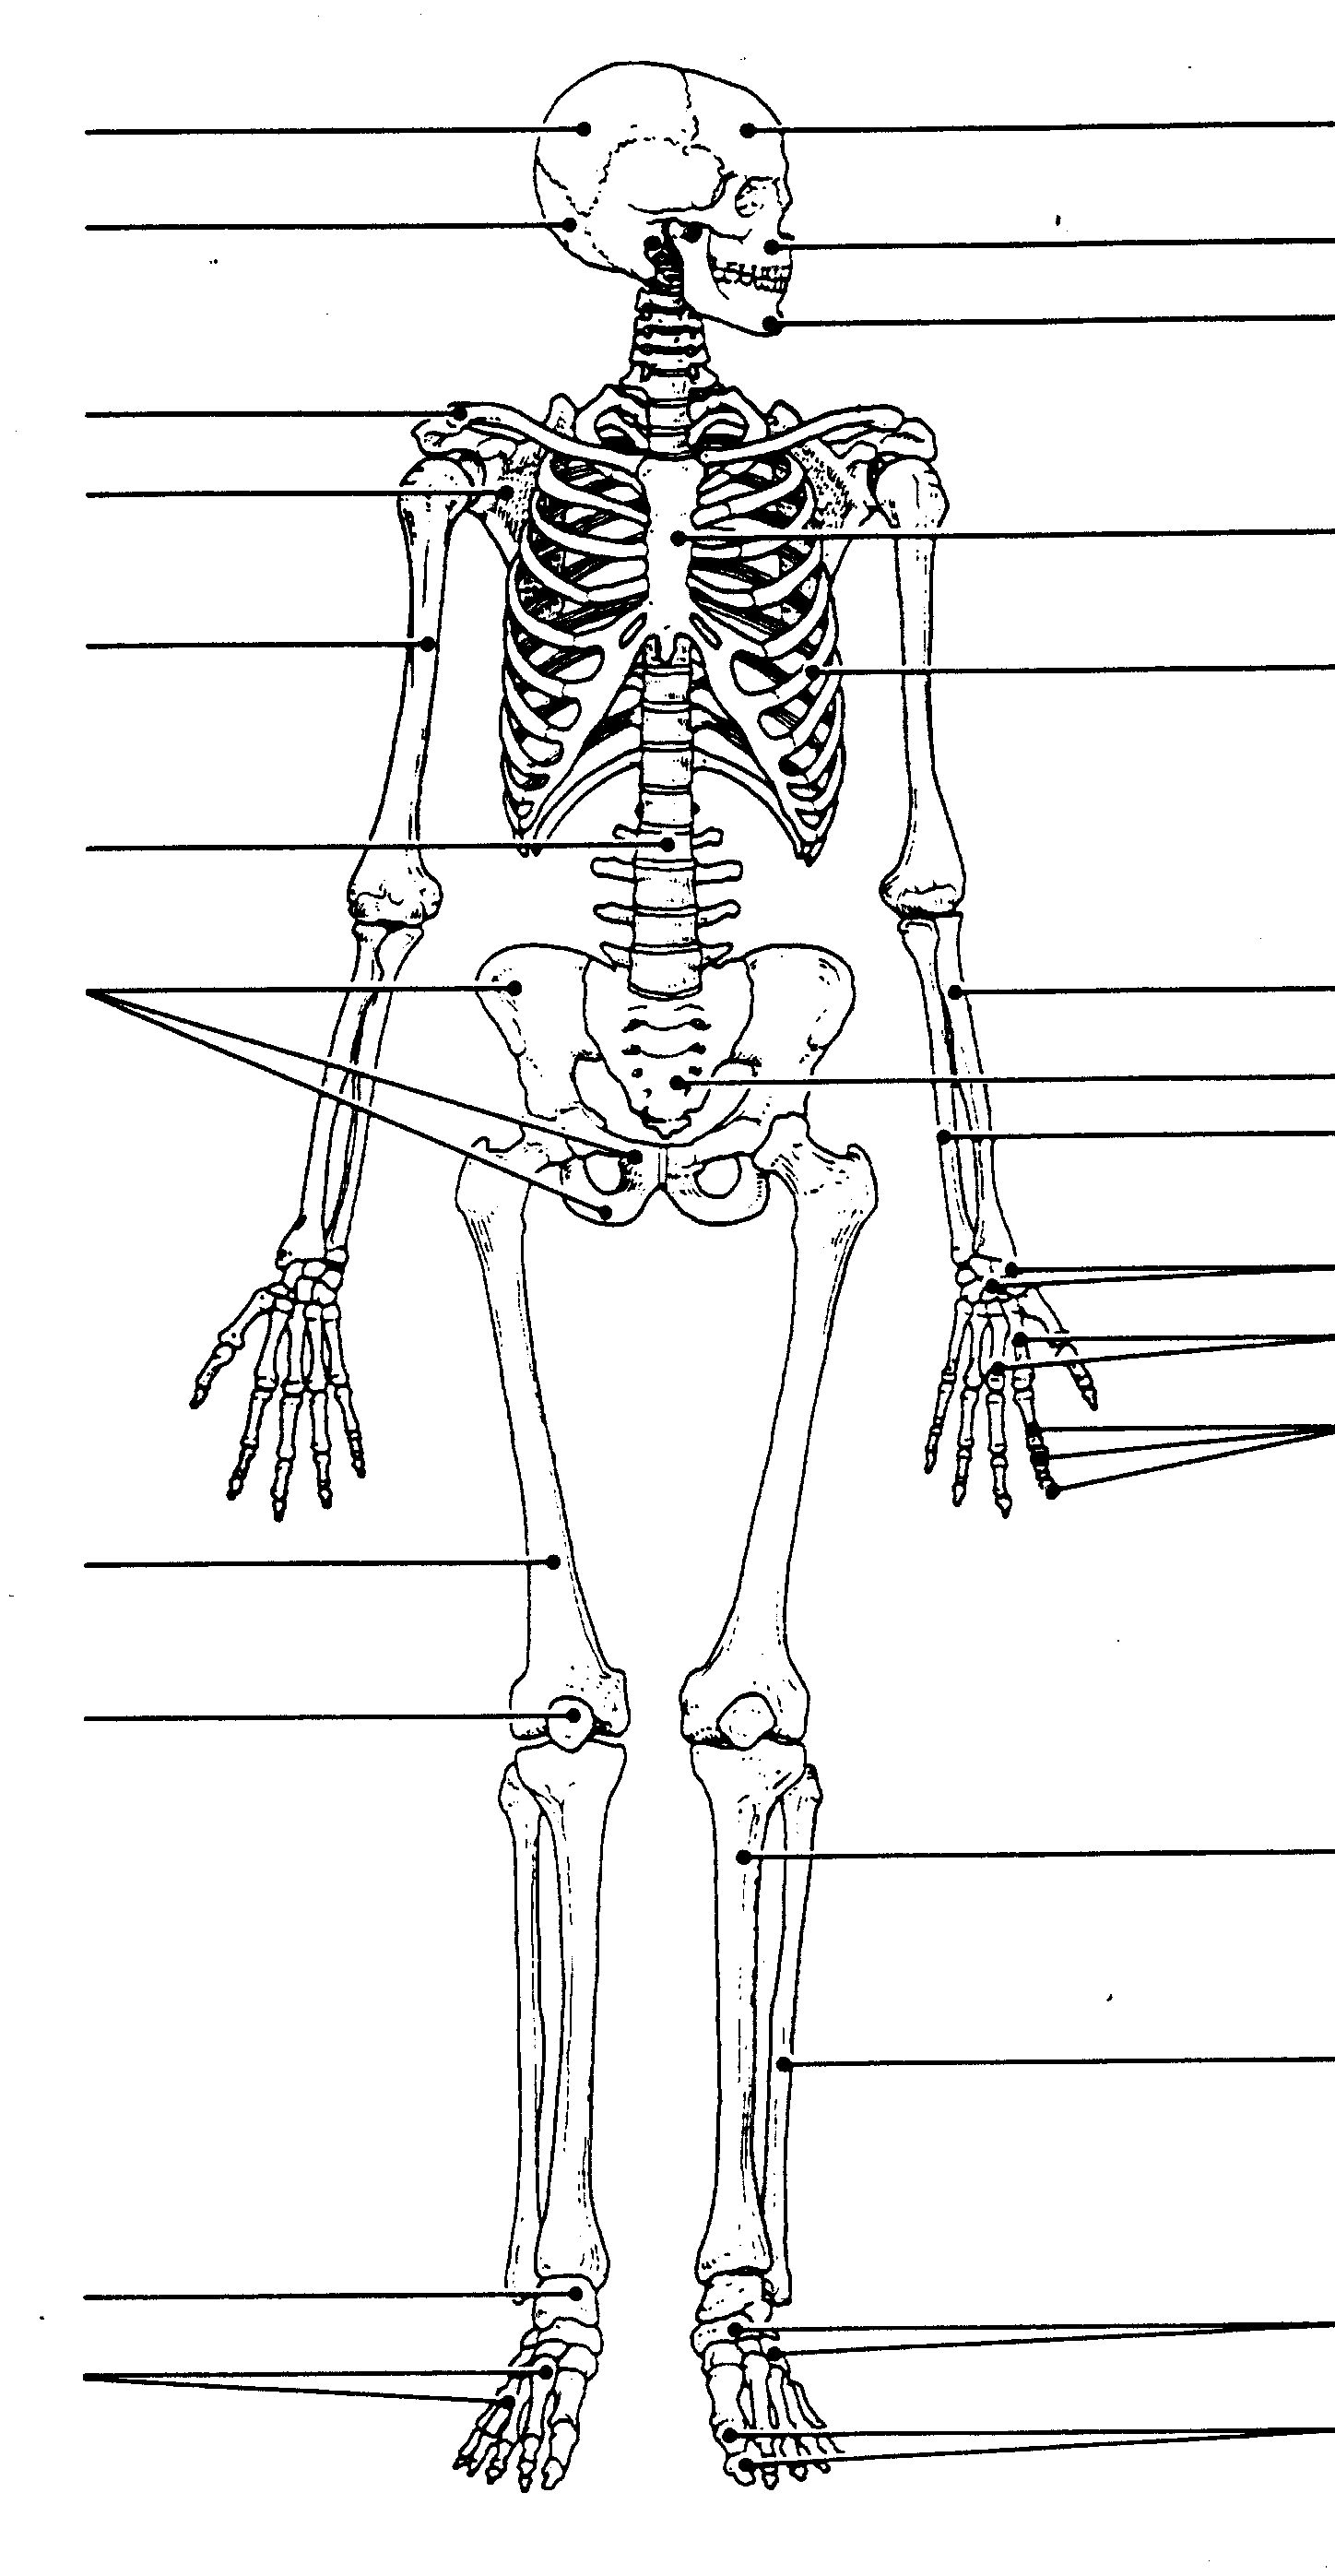 Unlabeled Human Skeleton Diagram Unlabeled Human